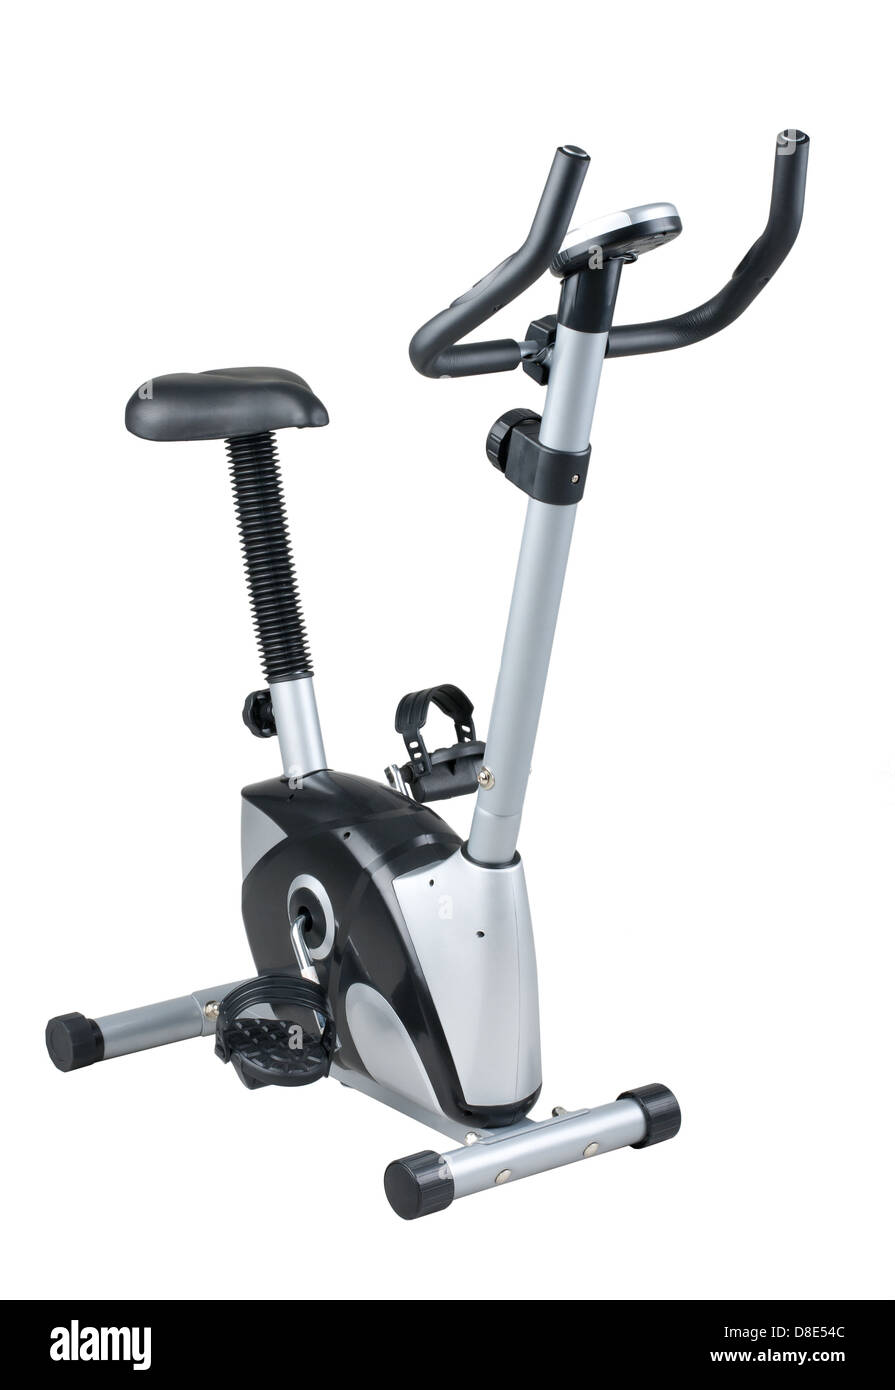 Bicycle exercise machine for use in fitness gym or home - Stock Image